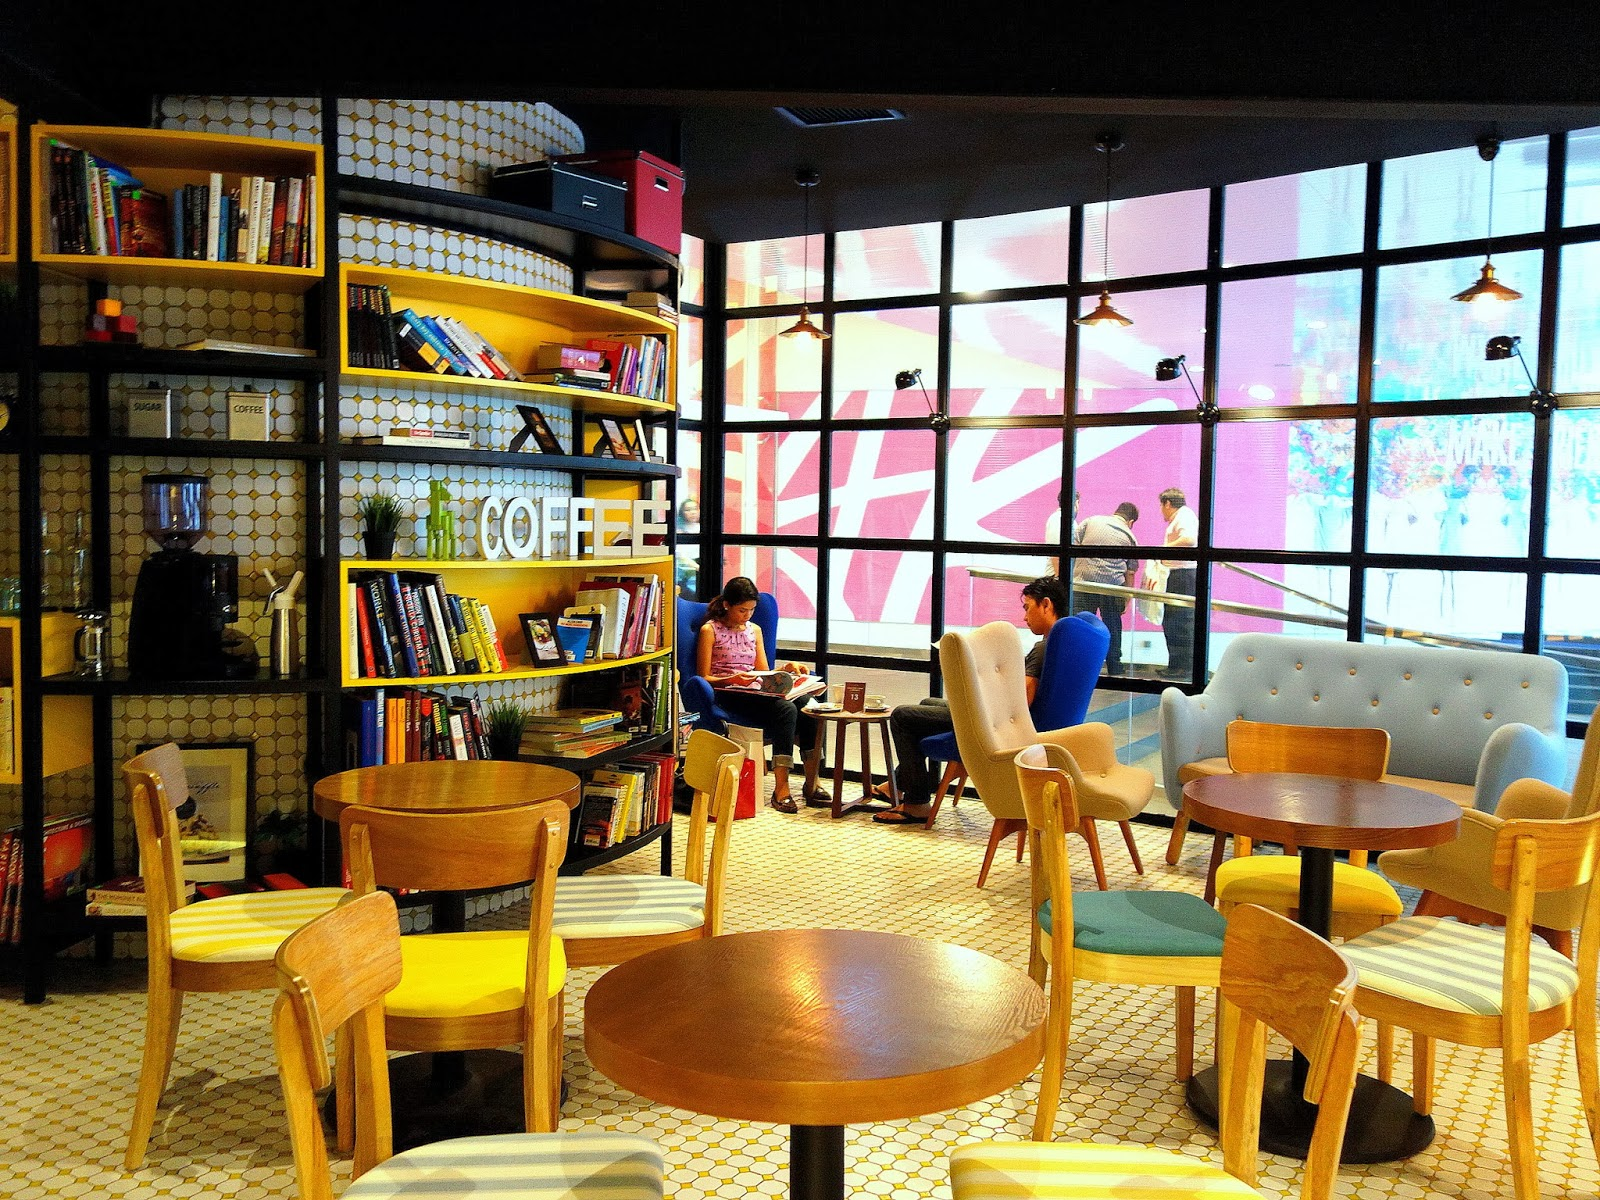 17 KL Cafe Interior Designs To Recreate at Home 37 photos : DSC01740 from www.recomn.com size 1600 x 1200 jpeg 633kB